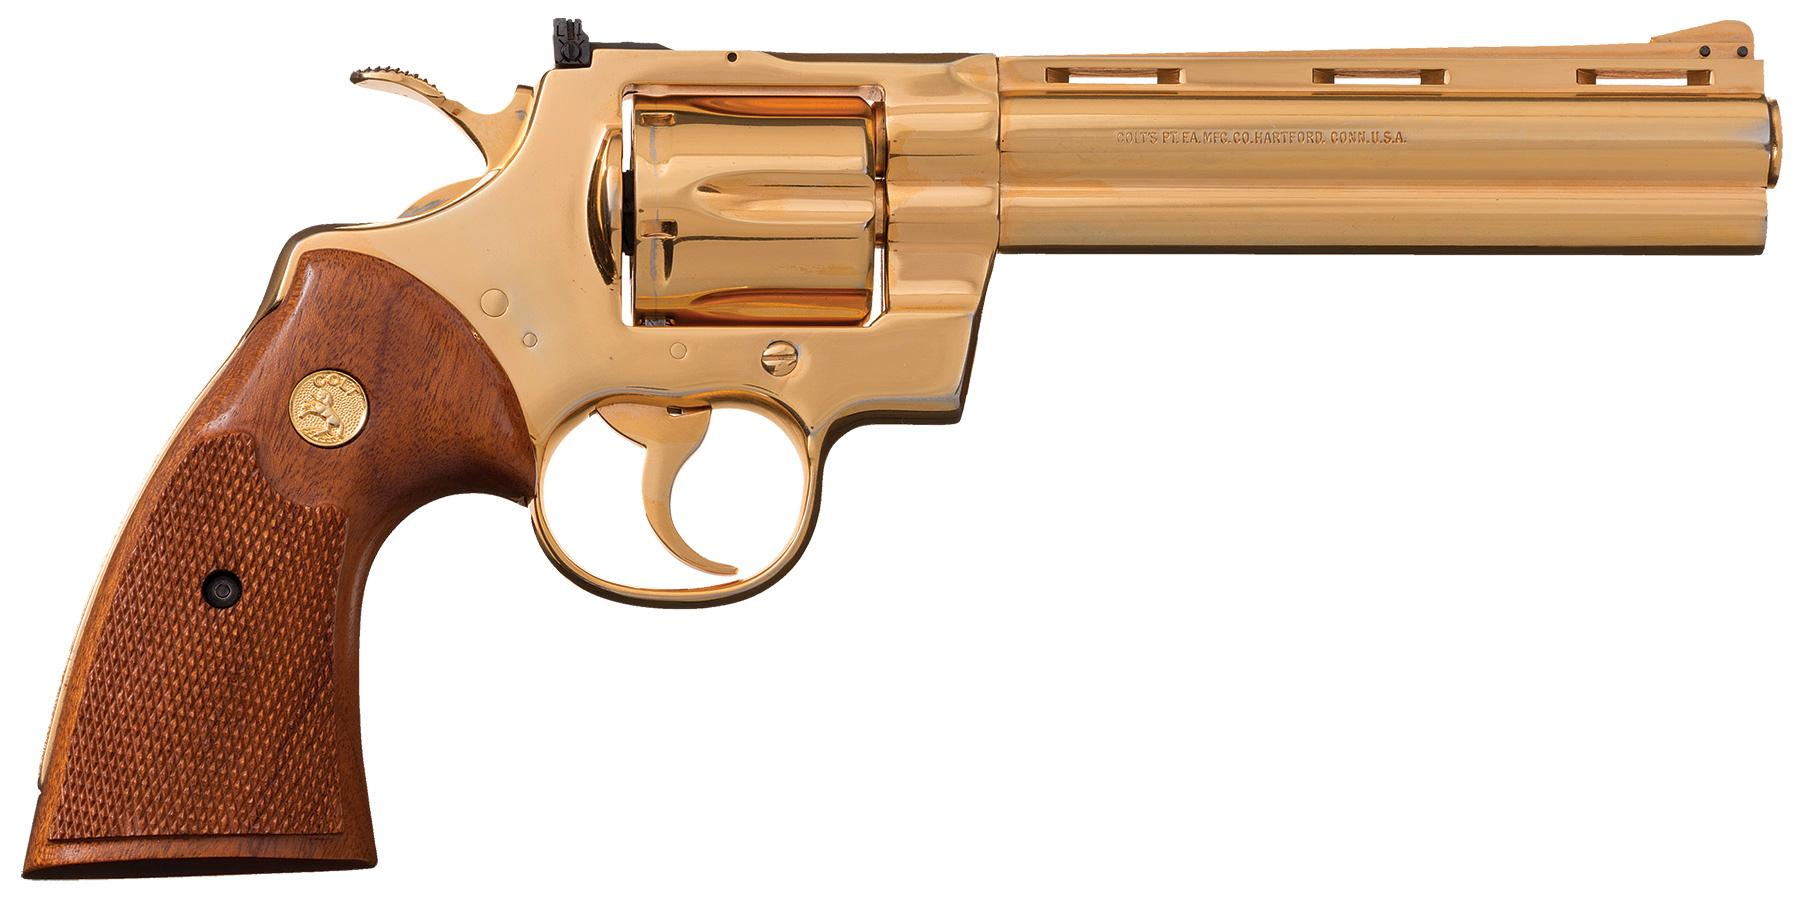 Gold plated Colt Python